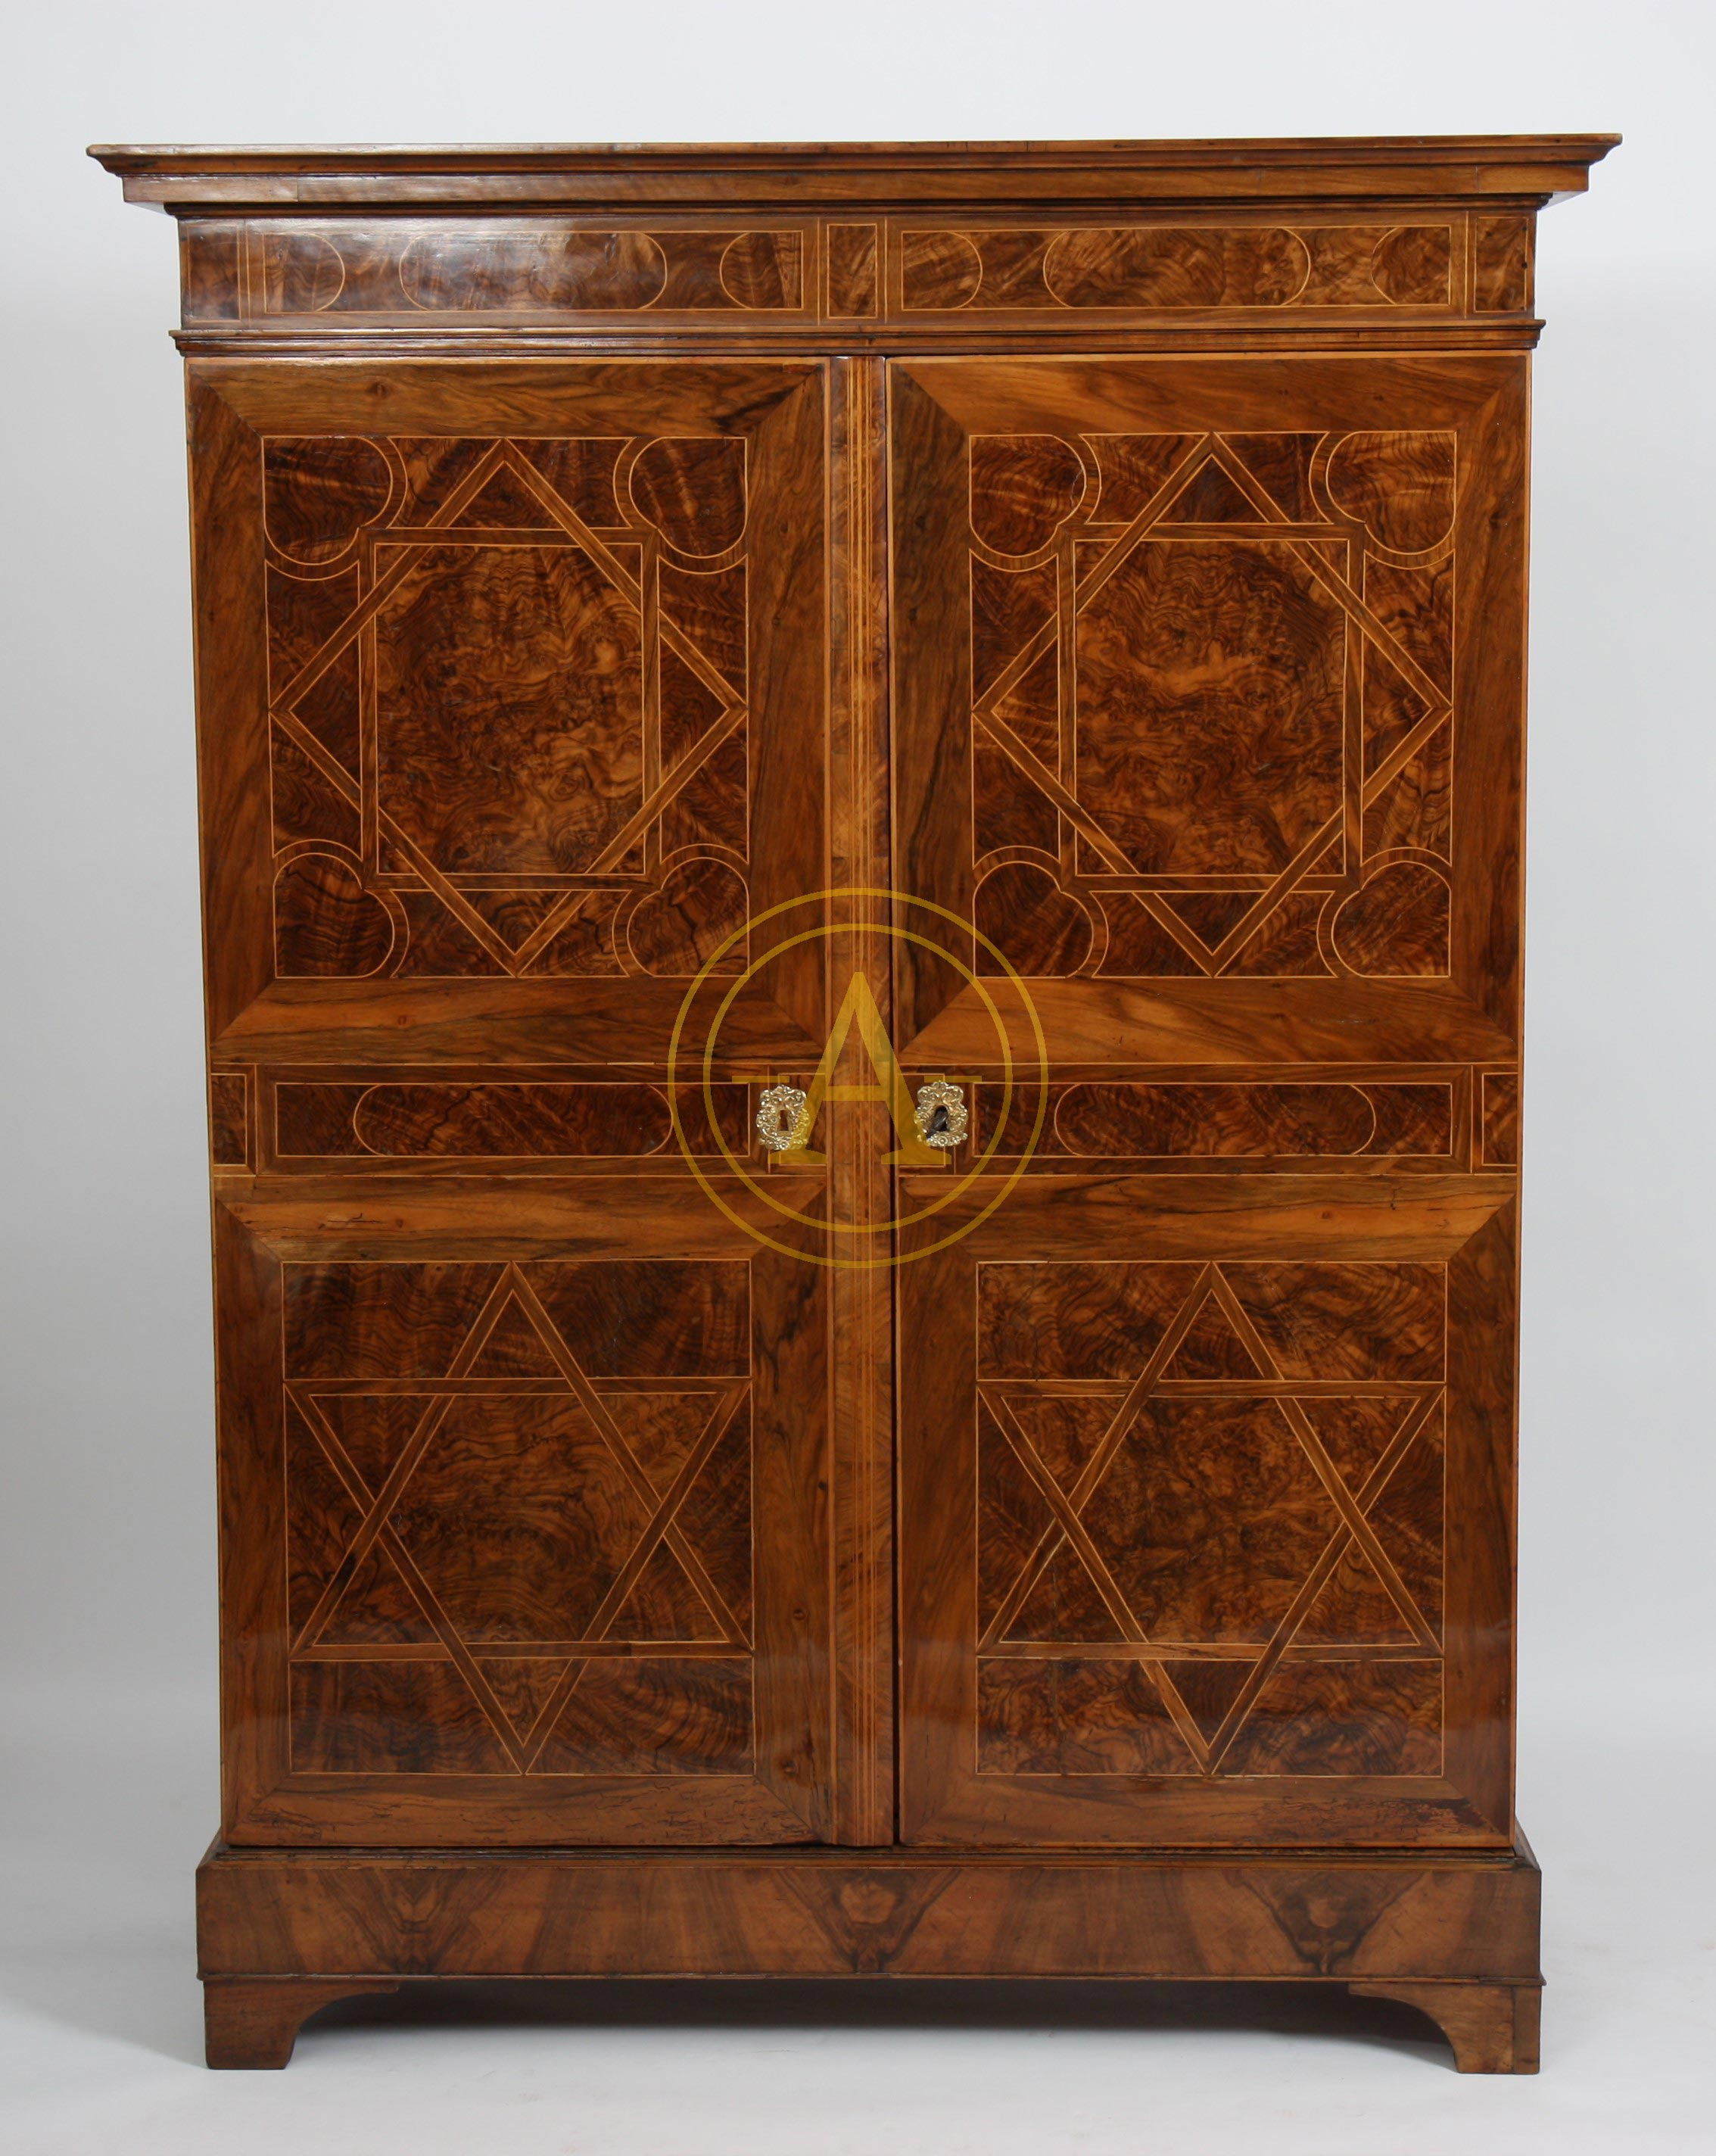 armoire marquetee louis xiv antiques trade gallery. Black Bedroom Furniture Sets. Home Design Ideas